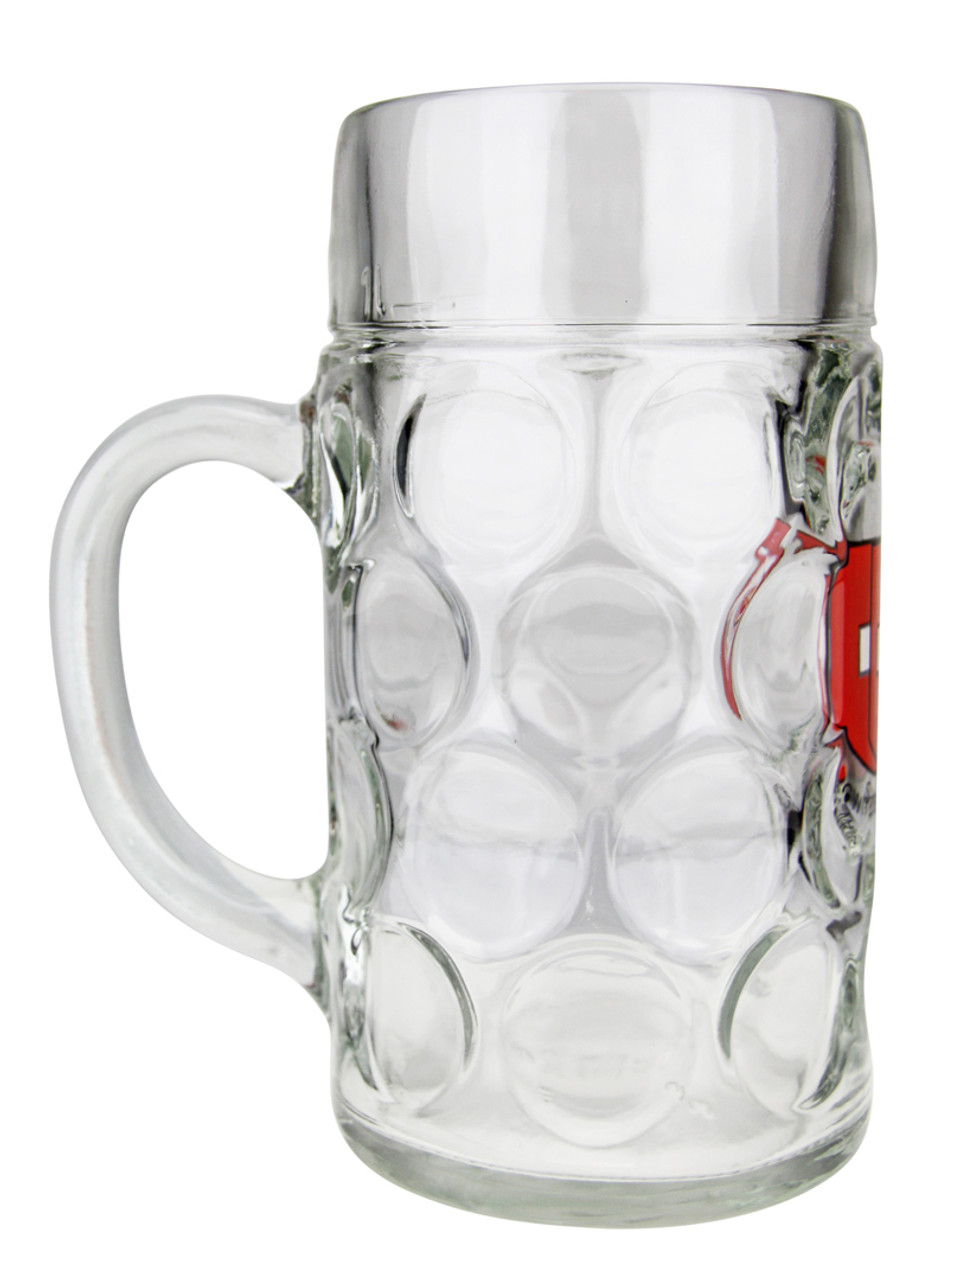 Oktoberfest Glass Beer Mug with Swiss Cross